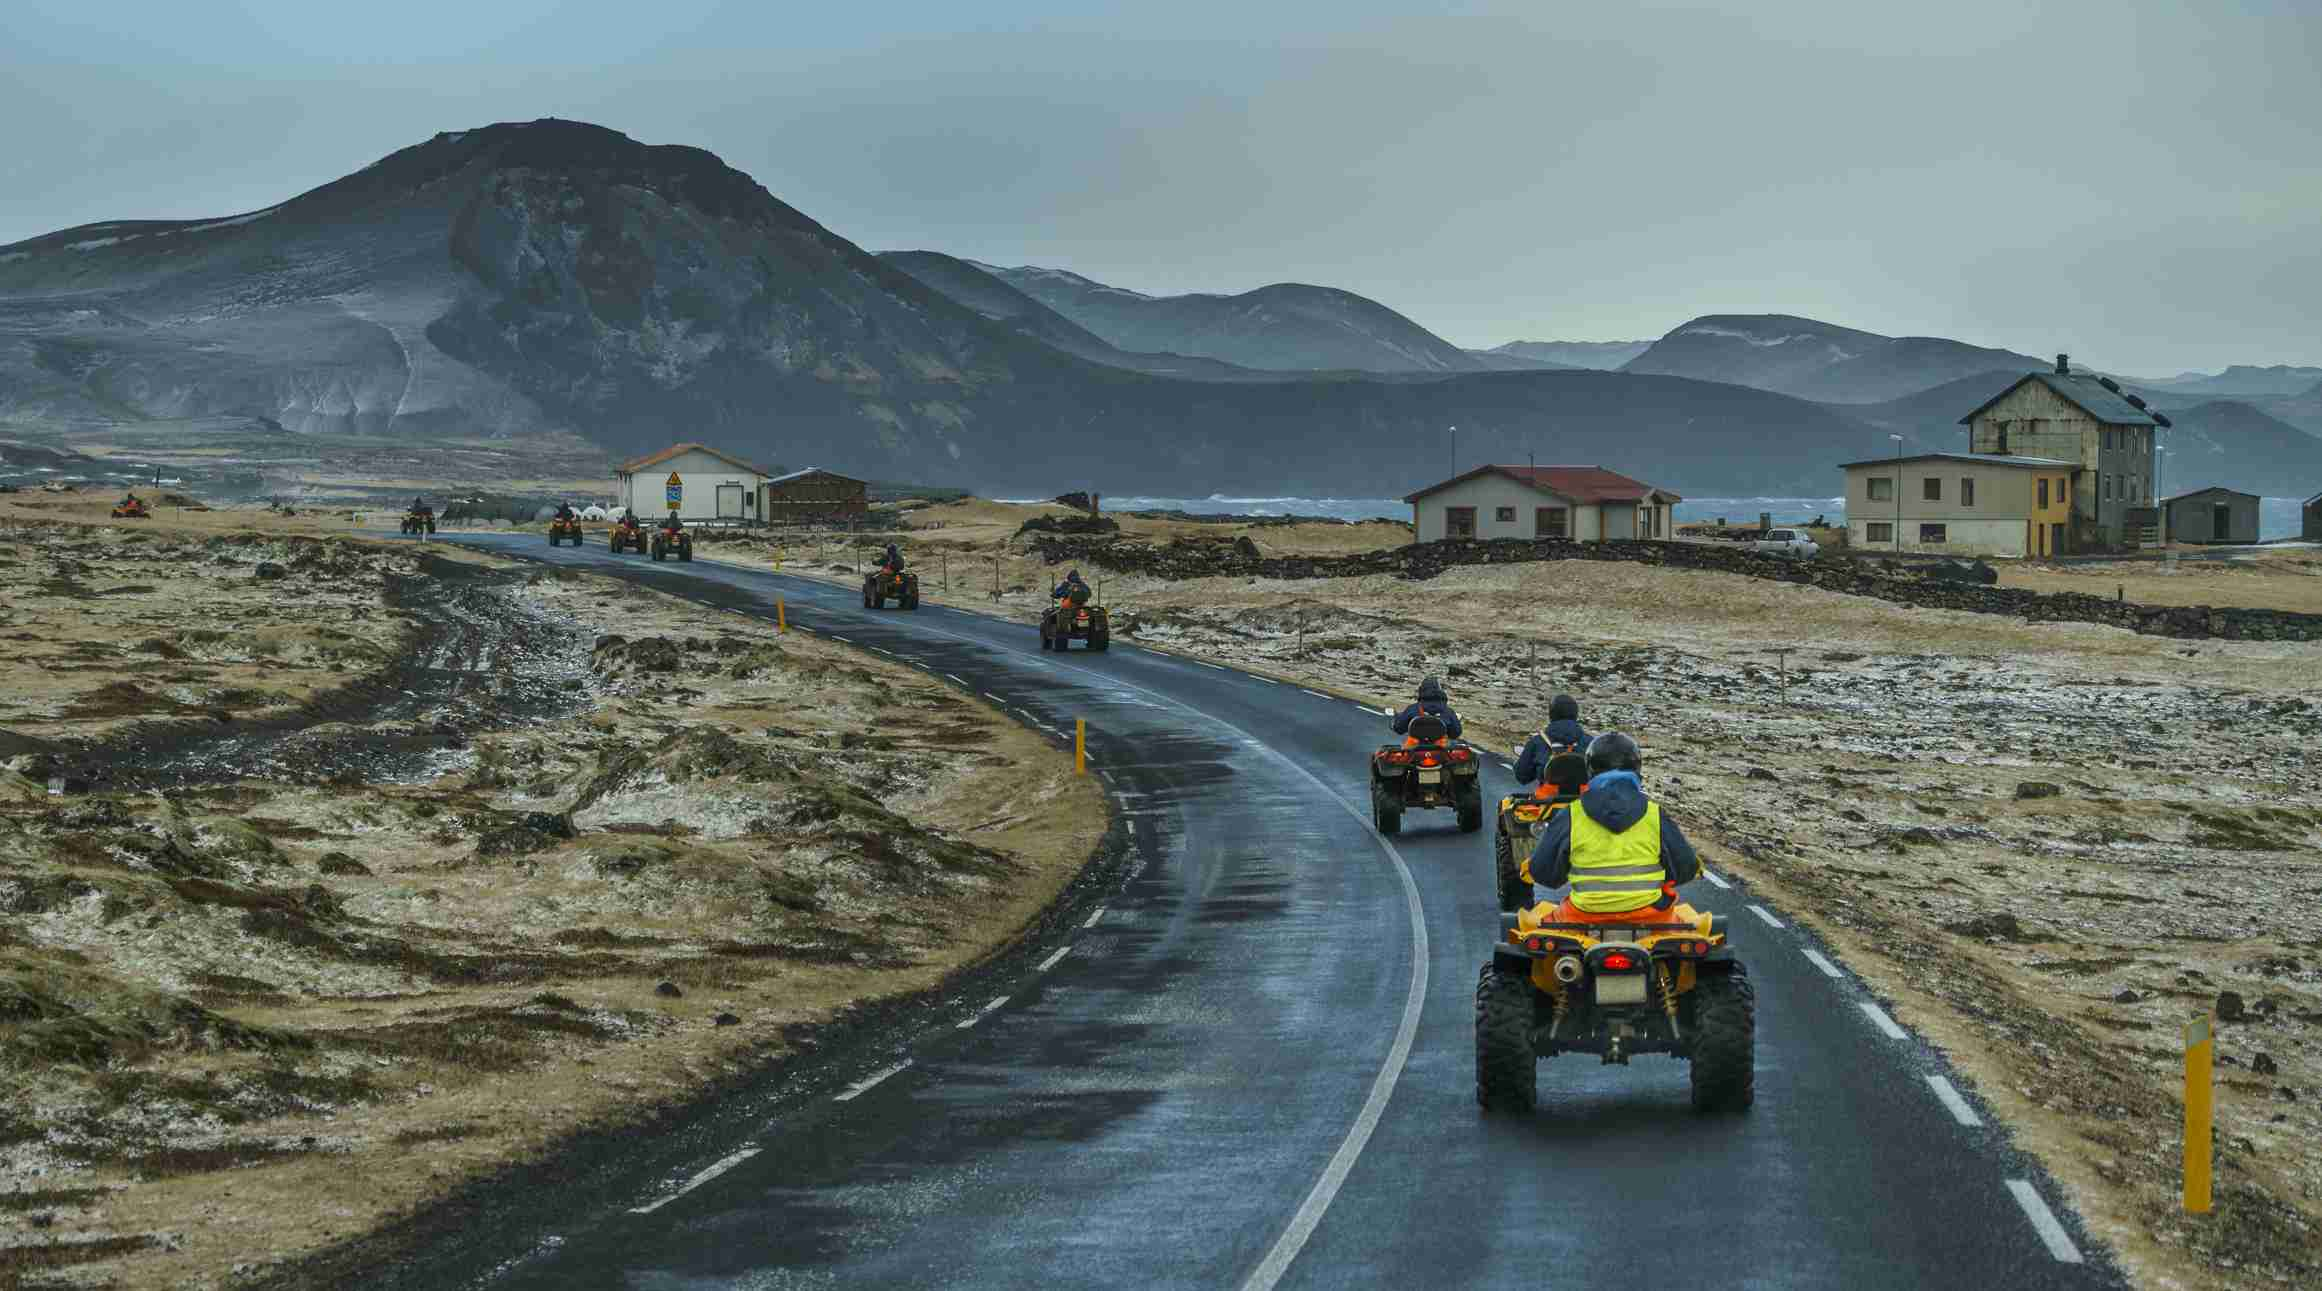 ATVs driving on the road in Iceland